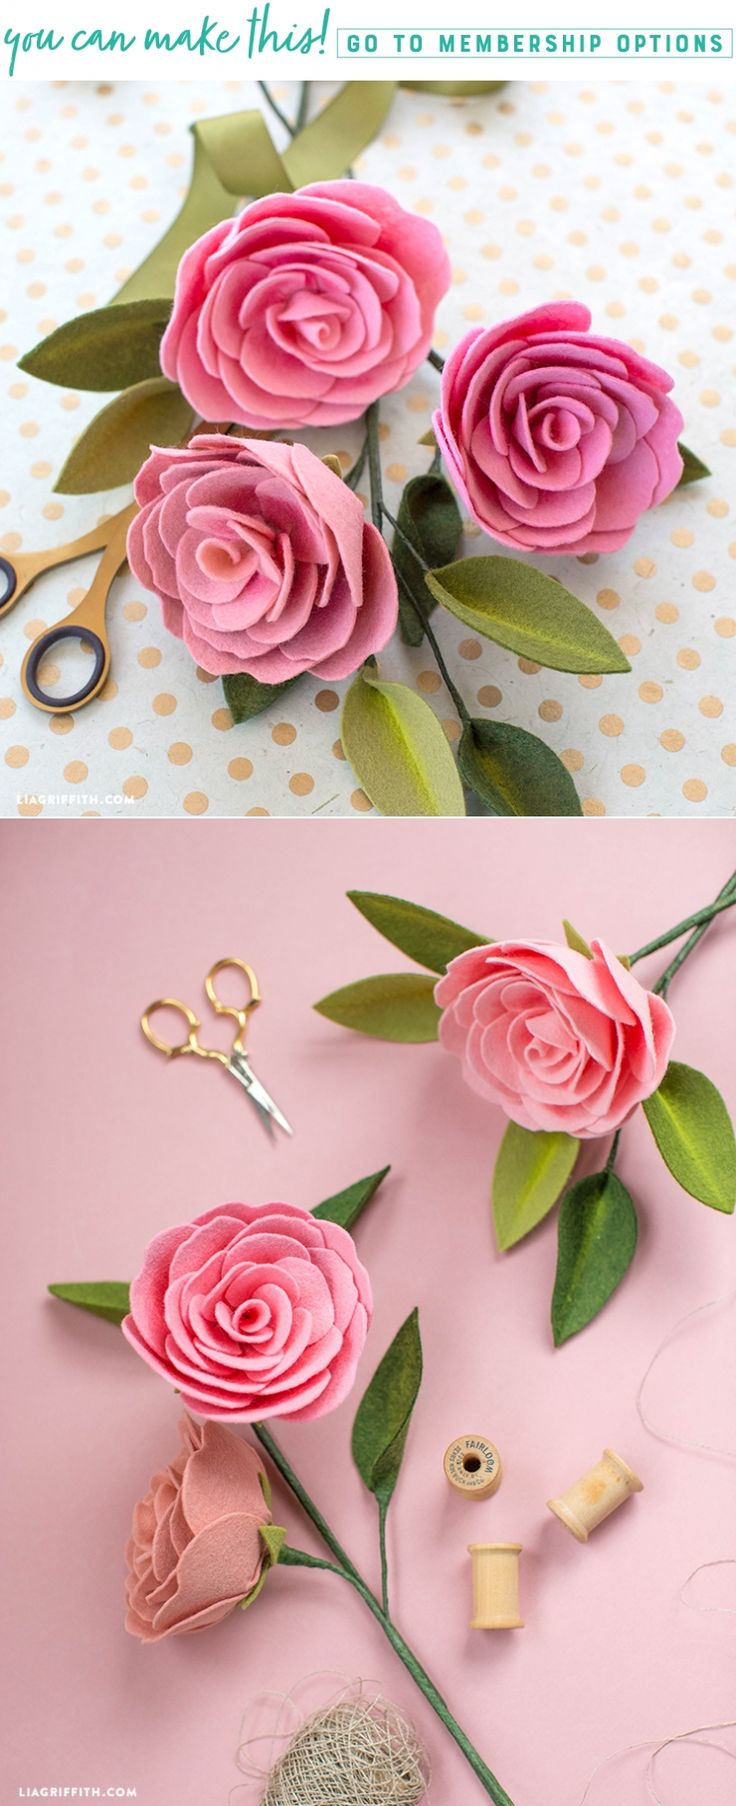 Soft and Sweet ✨ This gorgeous Camellia is the latest addition to our DIY felt flower projects. Pan Pastels give these flowers a realistic depth. Check out this project here https://liagriffith.com/camellia-diy-felt-flower/ * * * #felt #feltcute #feltcraft #diy #diycraft #diycrafts #diyidea #diyideas #diyinspiration #diyproject #diyprojects #diyflower #feltflower #feltflowers #camellia #camellias #craft #scissor #scissors #madewithlia